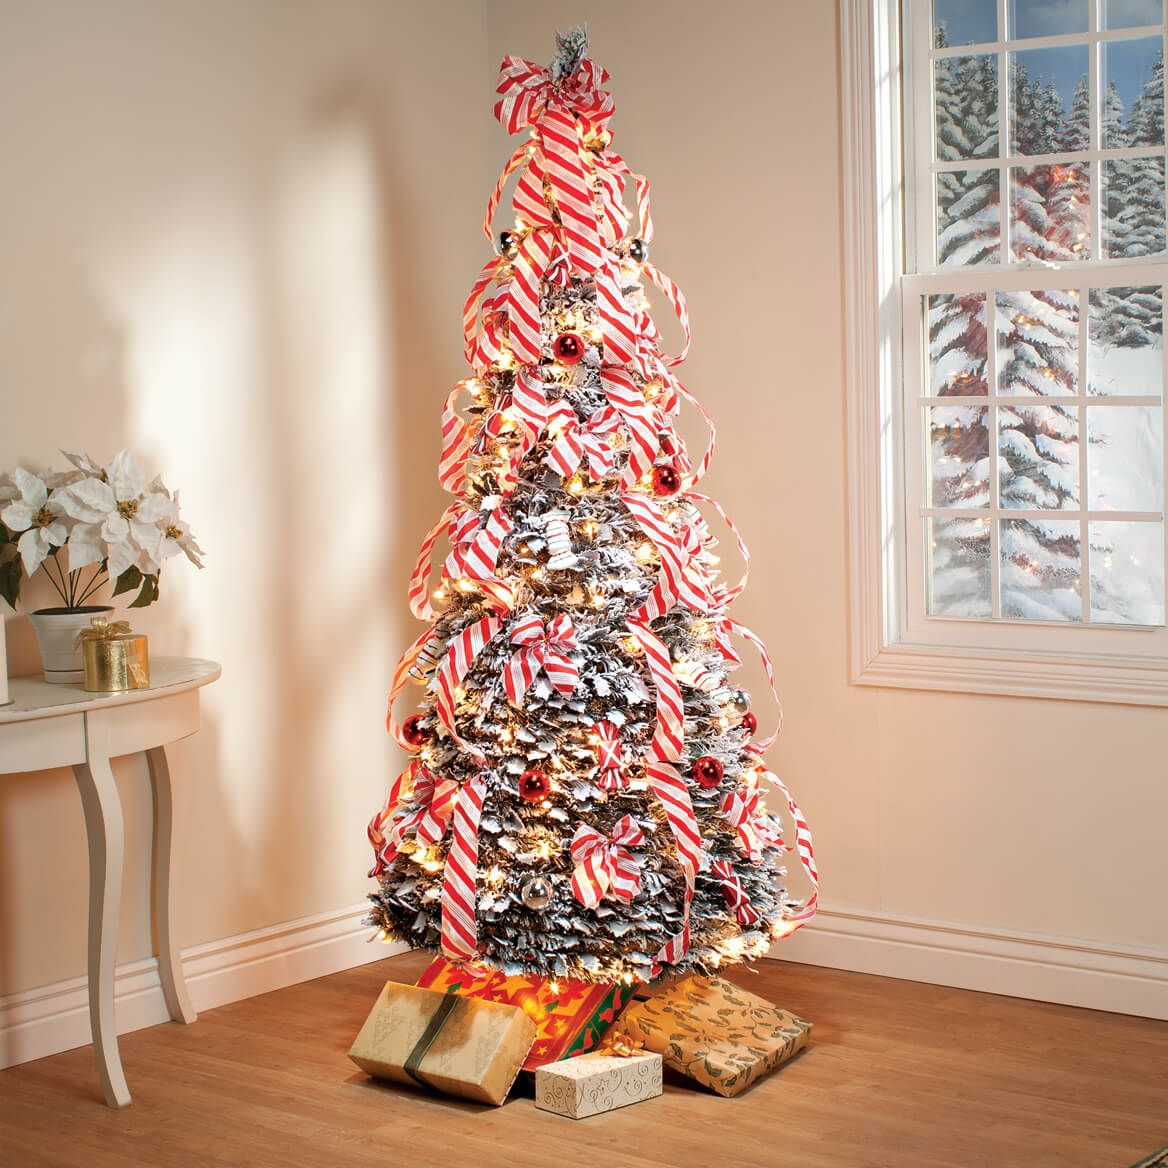 6 Ft Candy Cane Frosted Pull Up Tree Pre Lit Christmas Tree Garland Decor Christmas Home